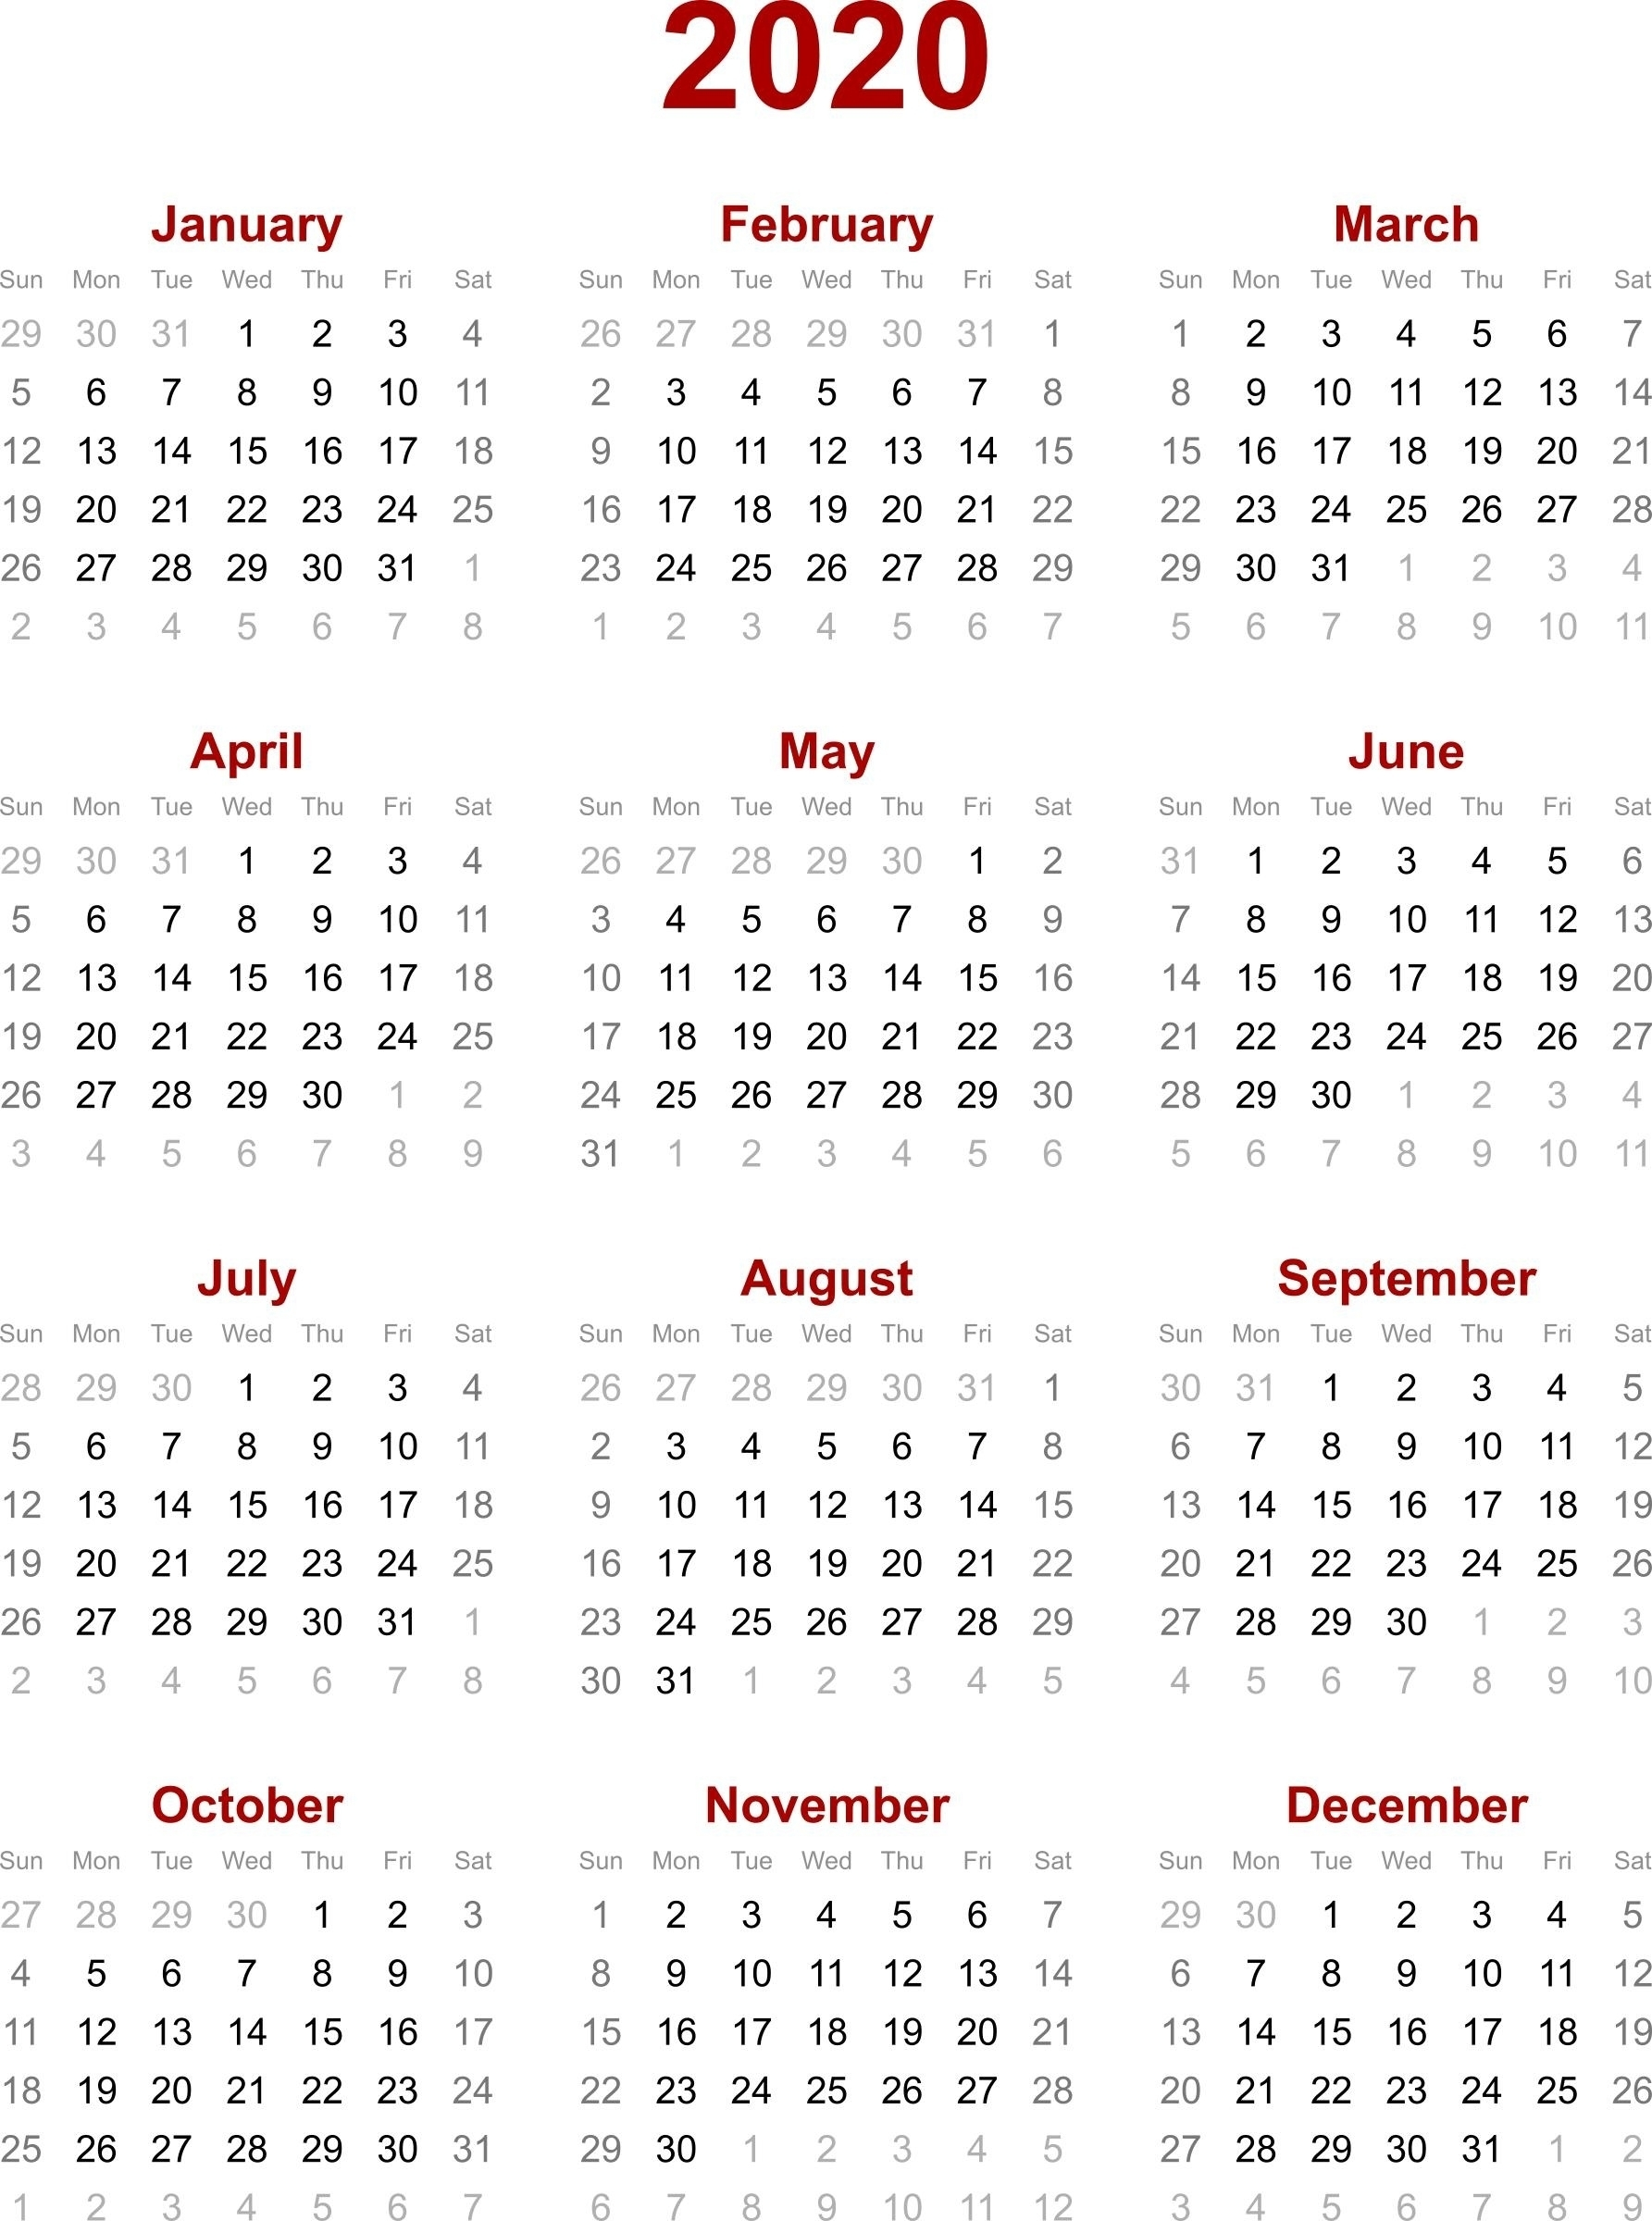 Remarkable 2020 Calendar Singapore Holiday • Printable Blank in 2020 Calendar Printable Singapore